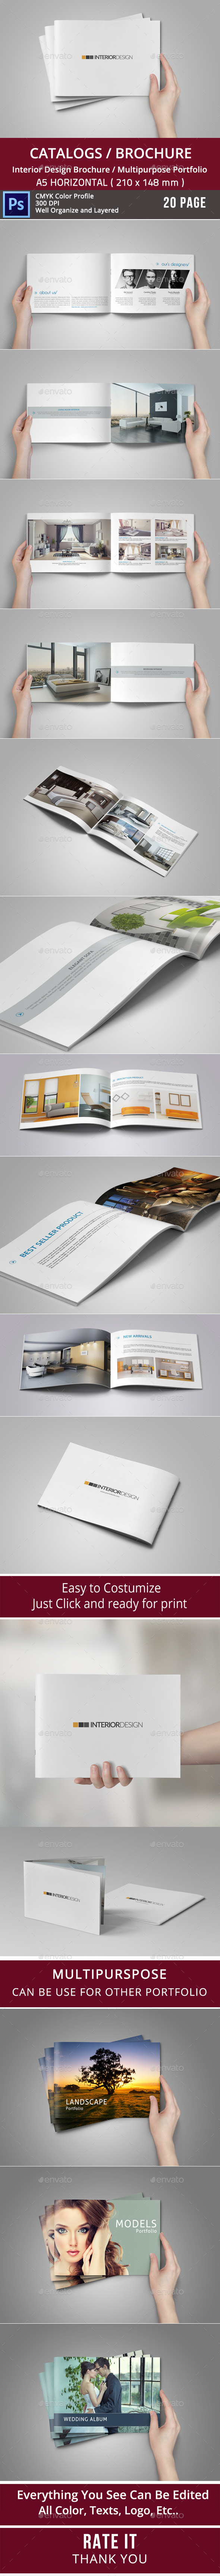 GraphicRiver Multipurpose Brochure or Portfolio Album 9033229